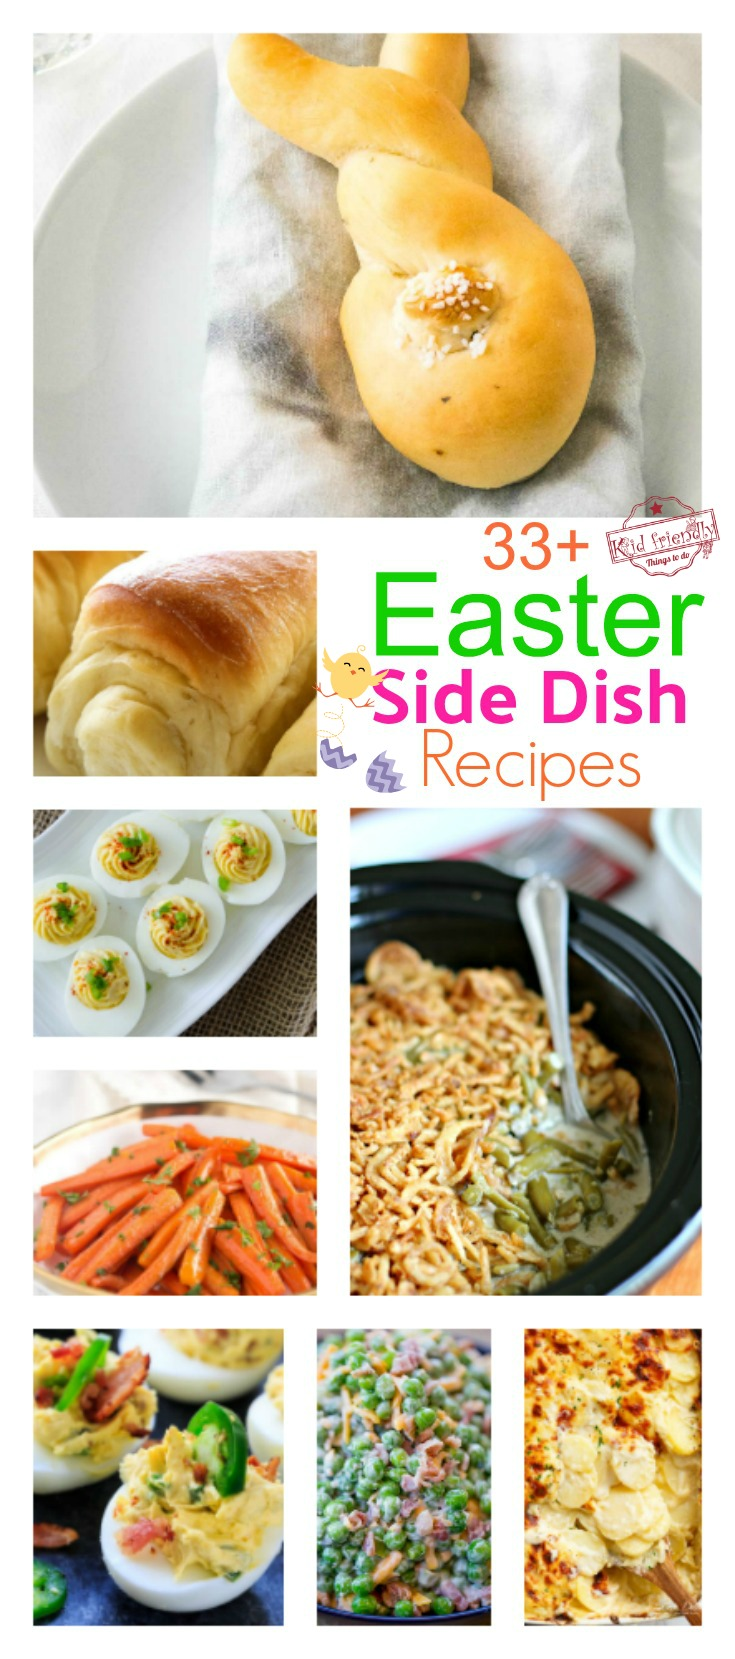 Over 33 Easy Easter Side Dish Recipes that will remind you of those traditional down home sides you grew up with! Vegetables, cold salads, Potatoes, Casseroles, Deviled Eggs and more! www.kidfriendlythingstodo.com